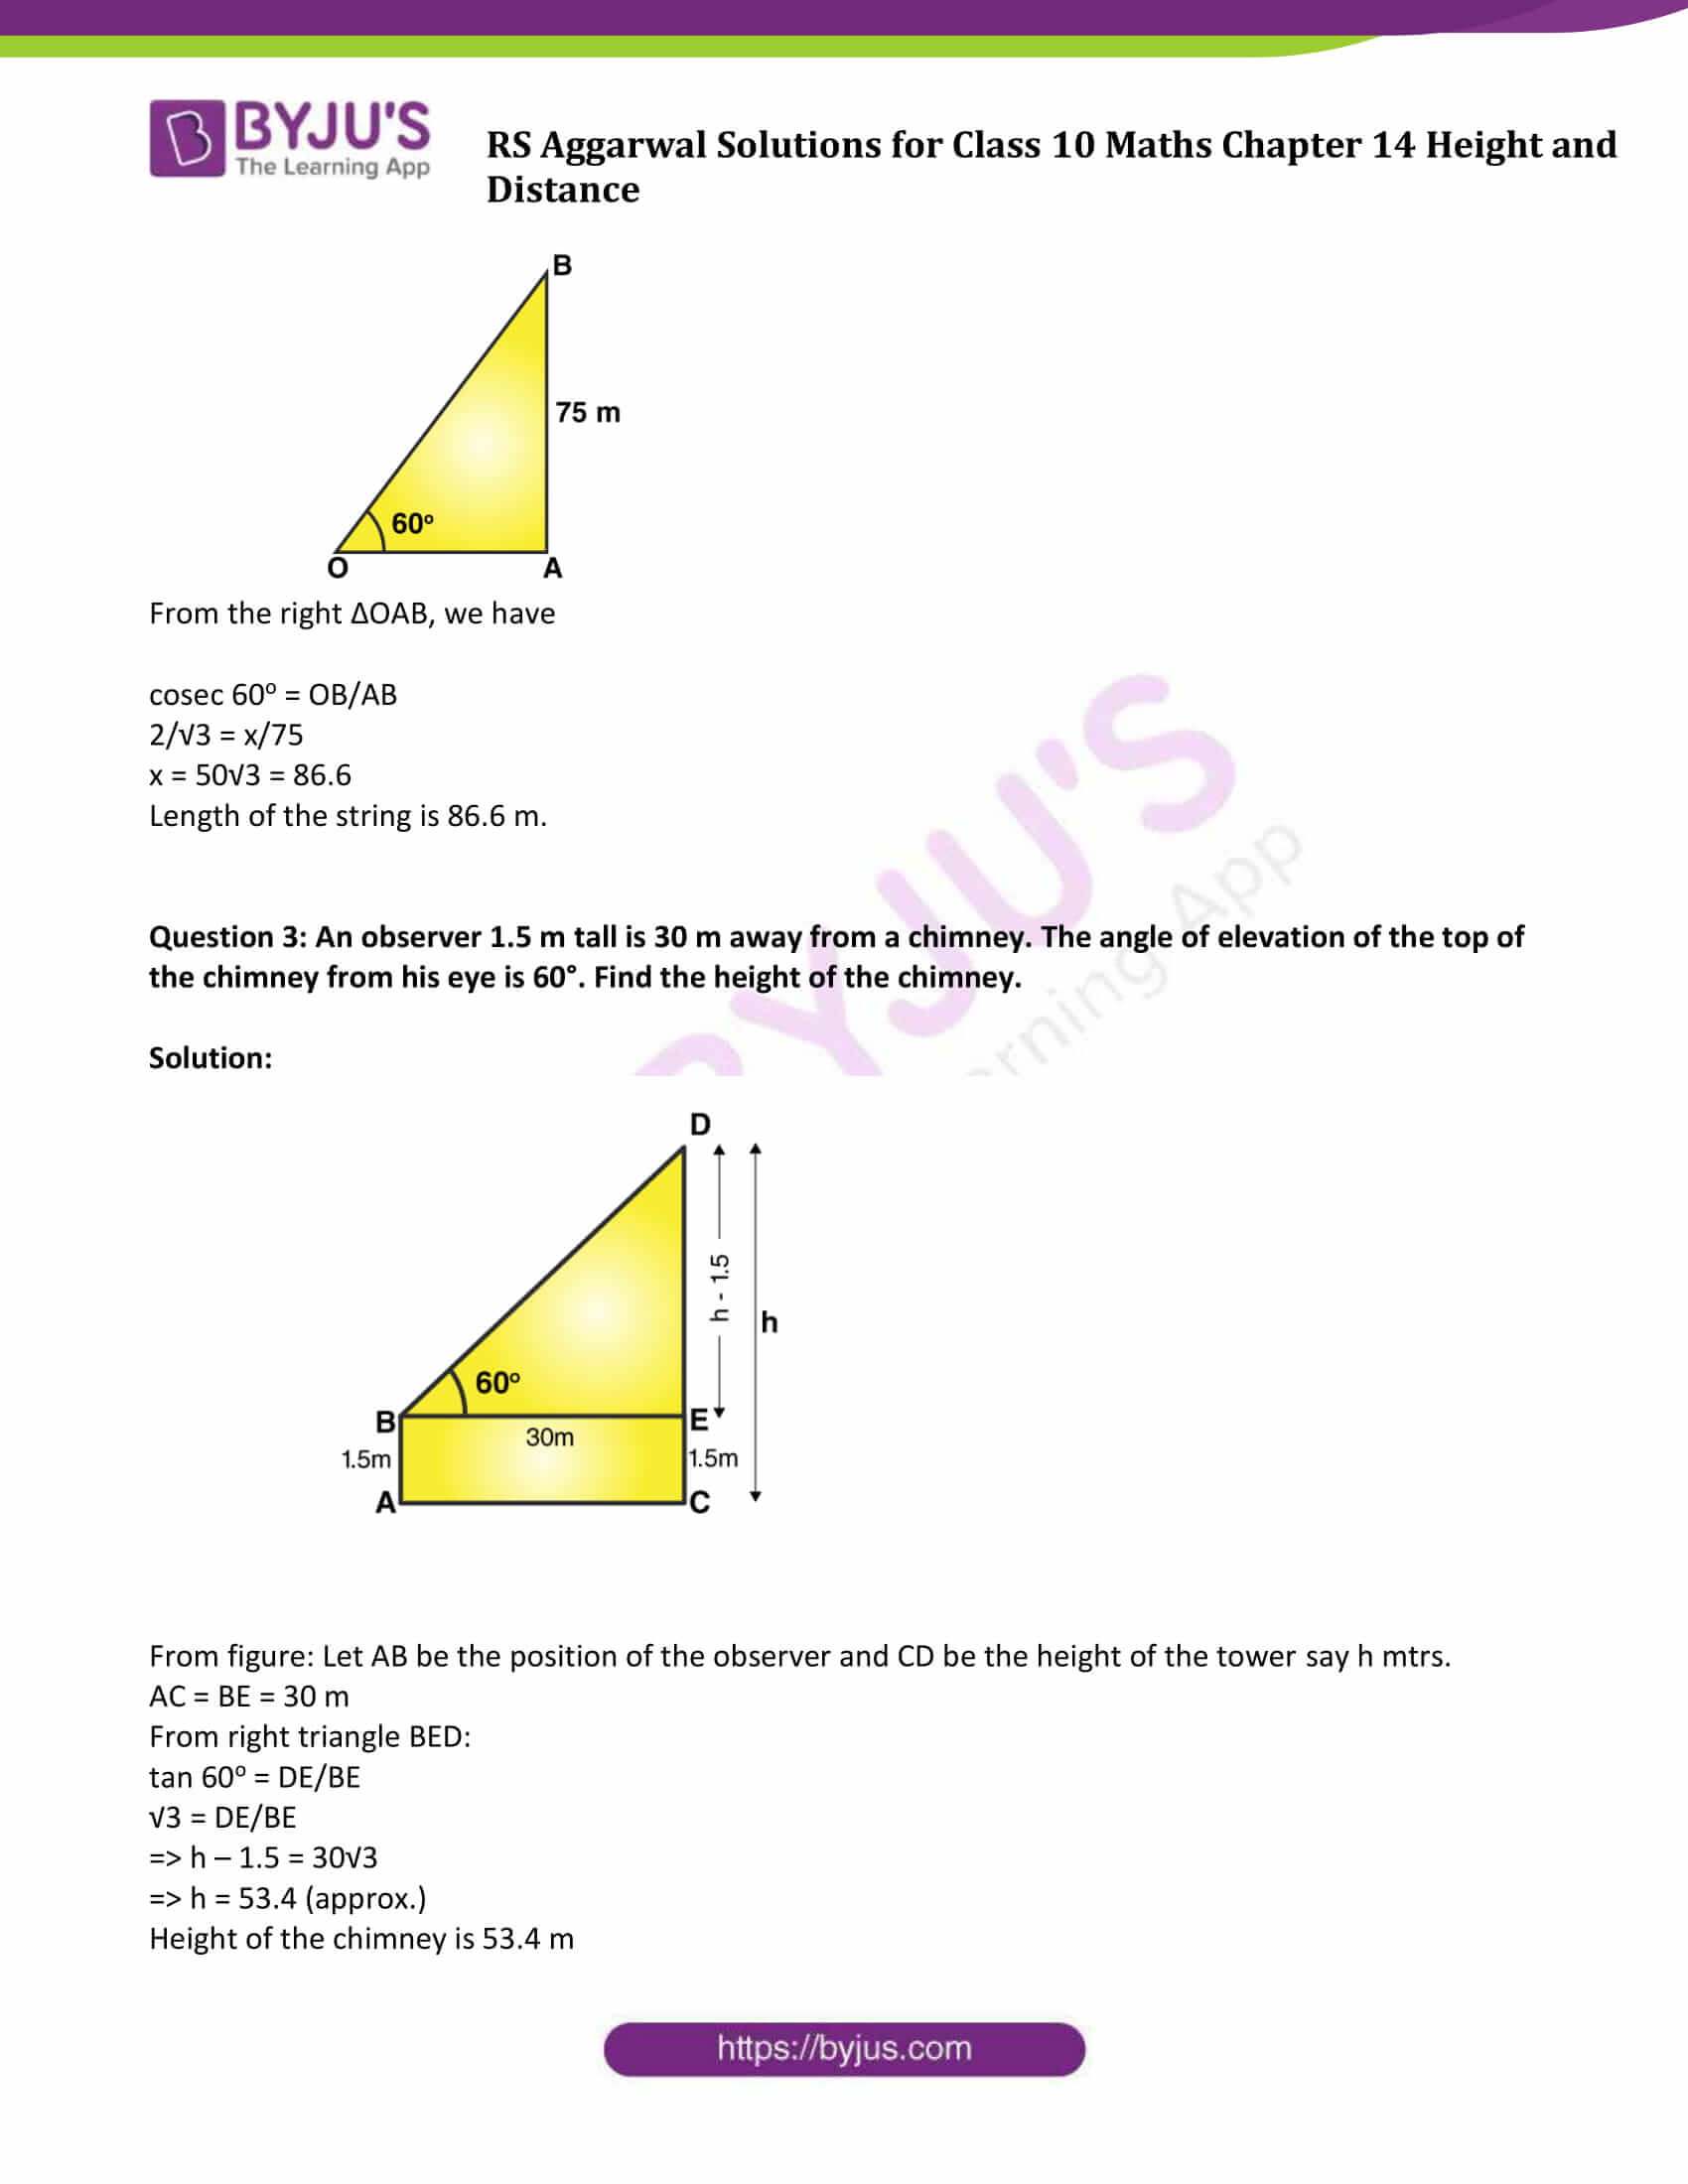 RS Aggarwal Sol class 10 Maths Chapter 14